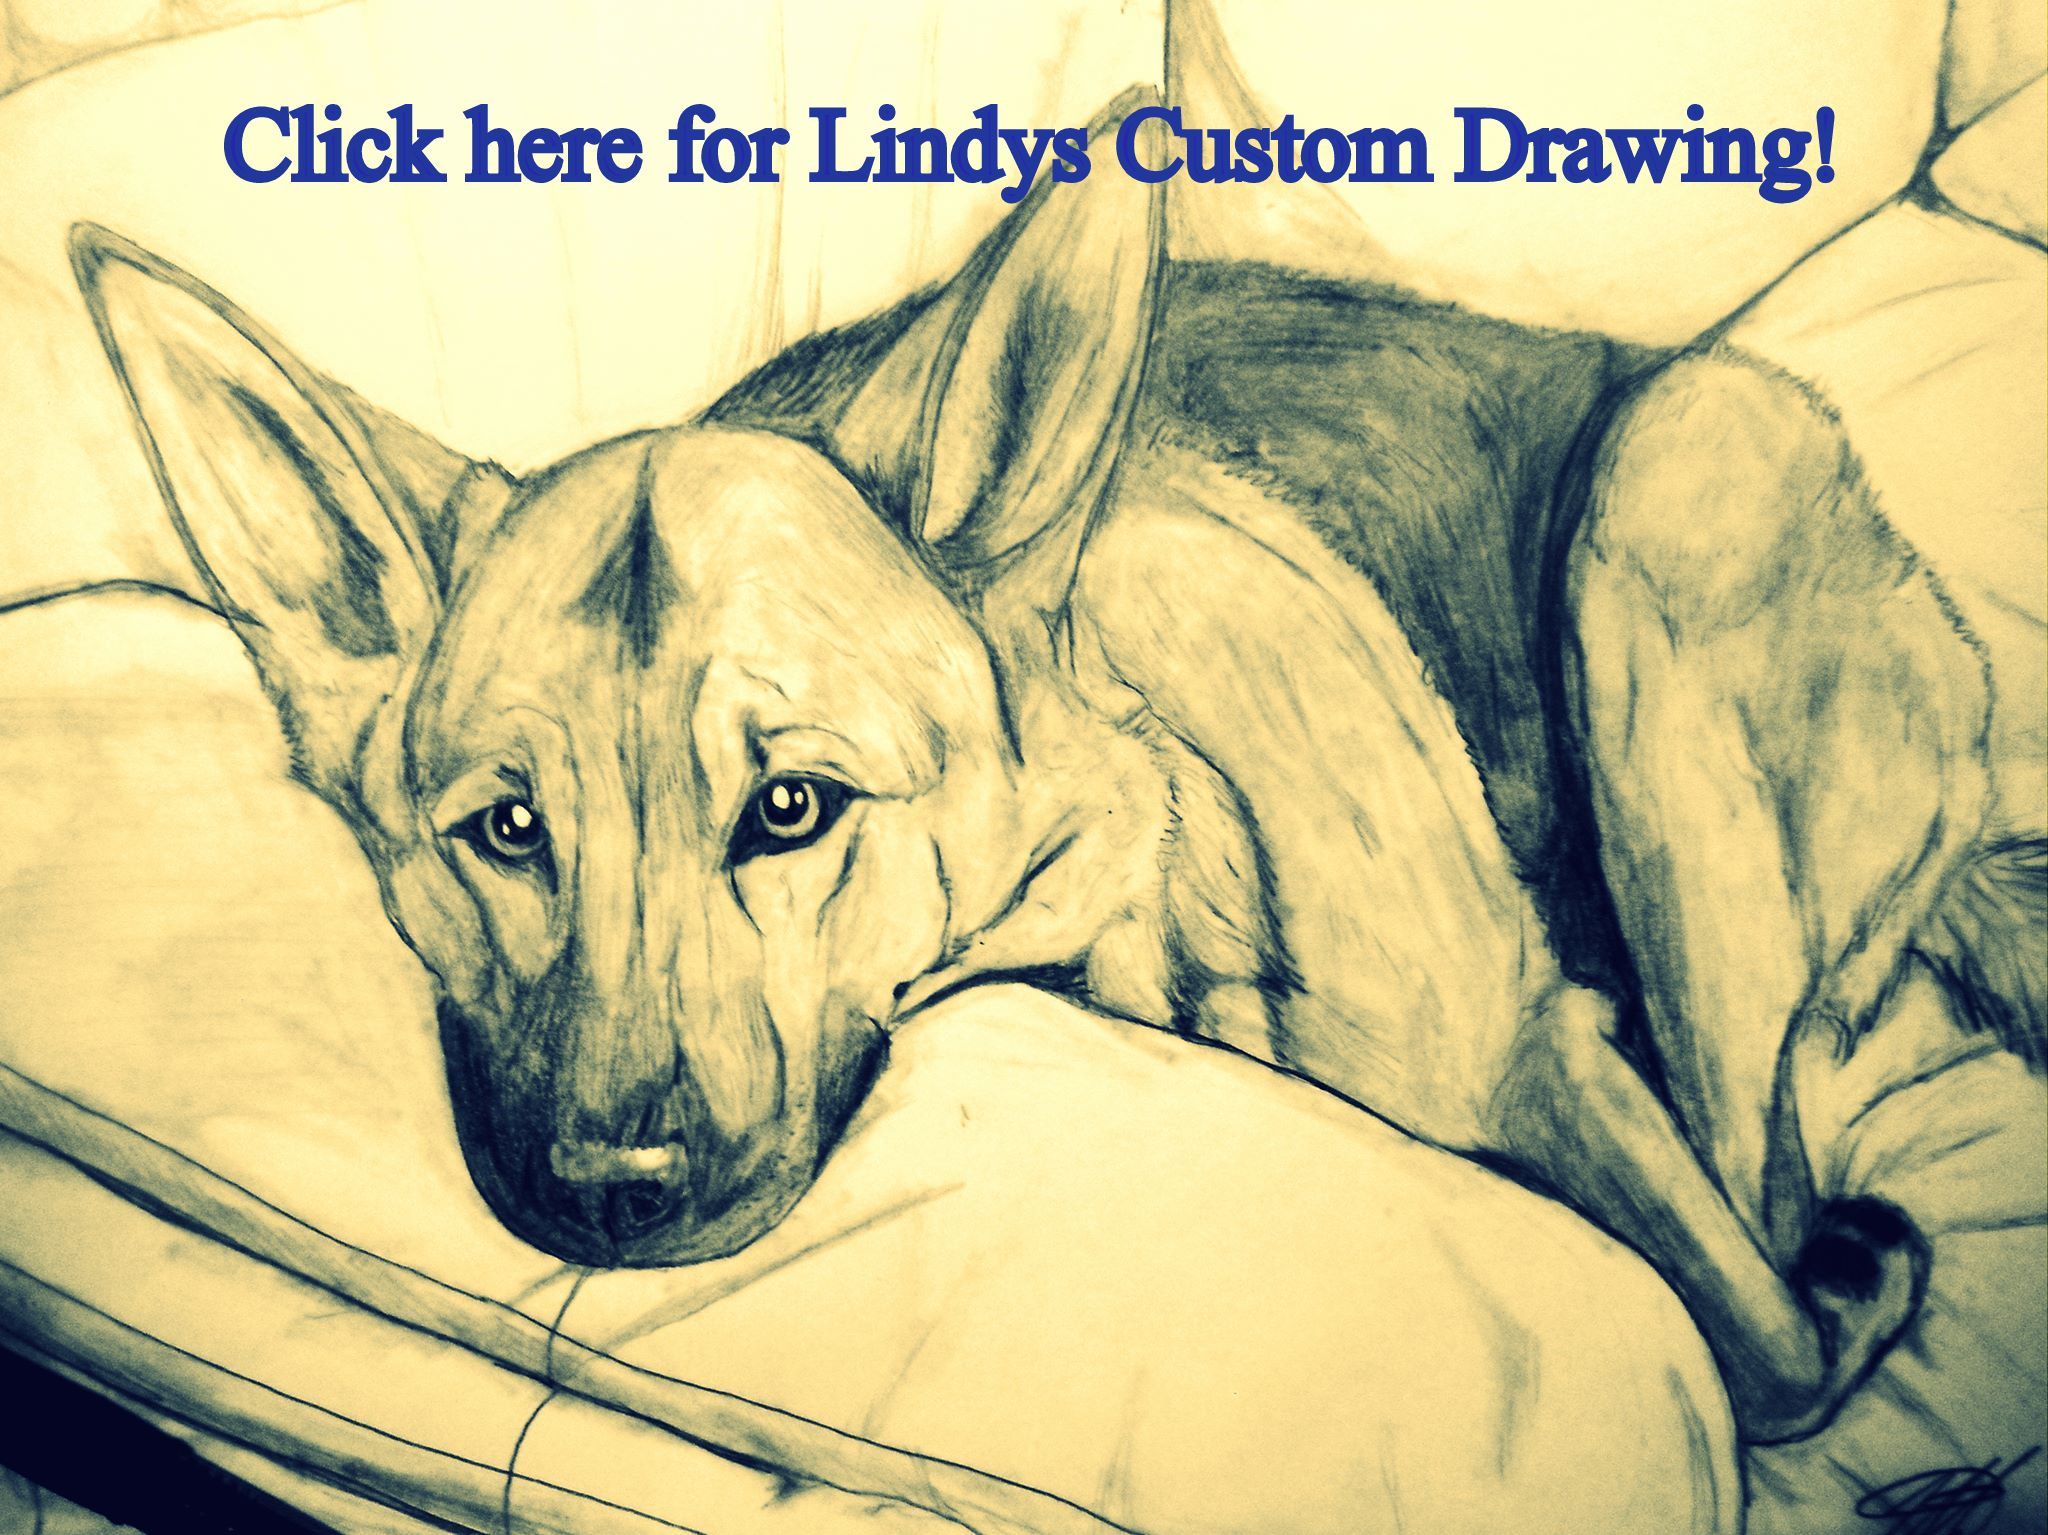 Lindy's Custom Drawings